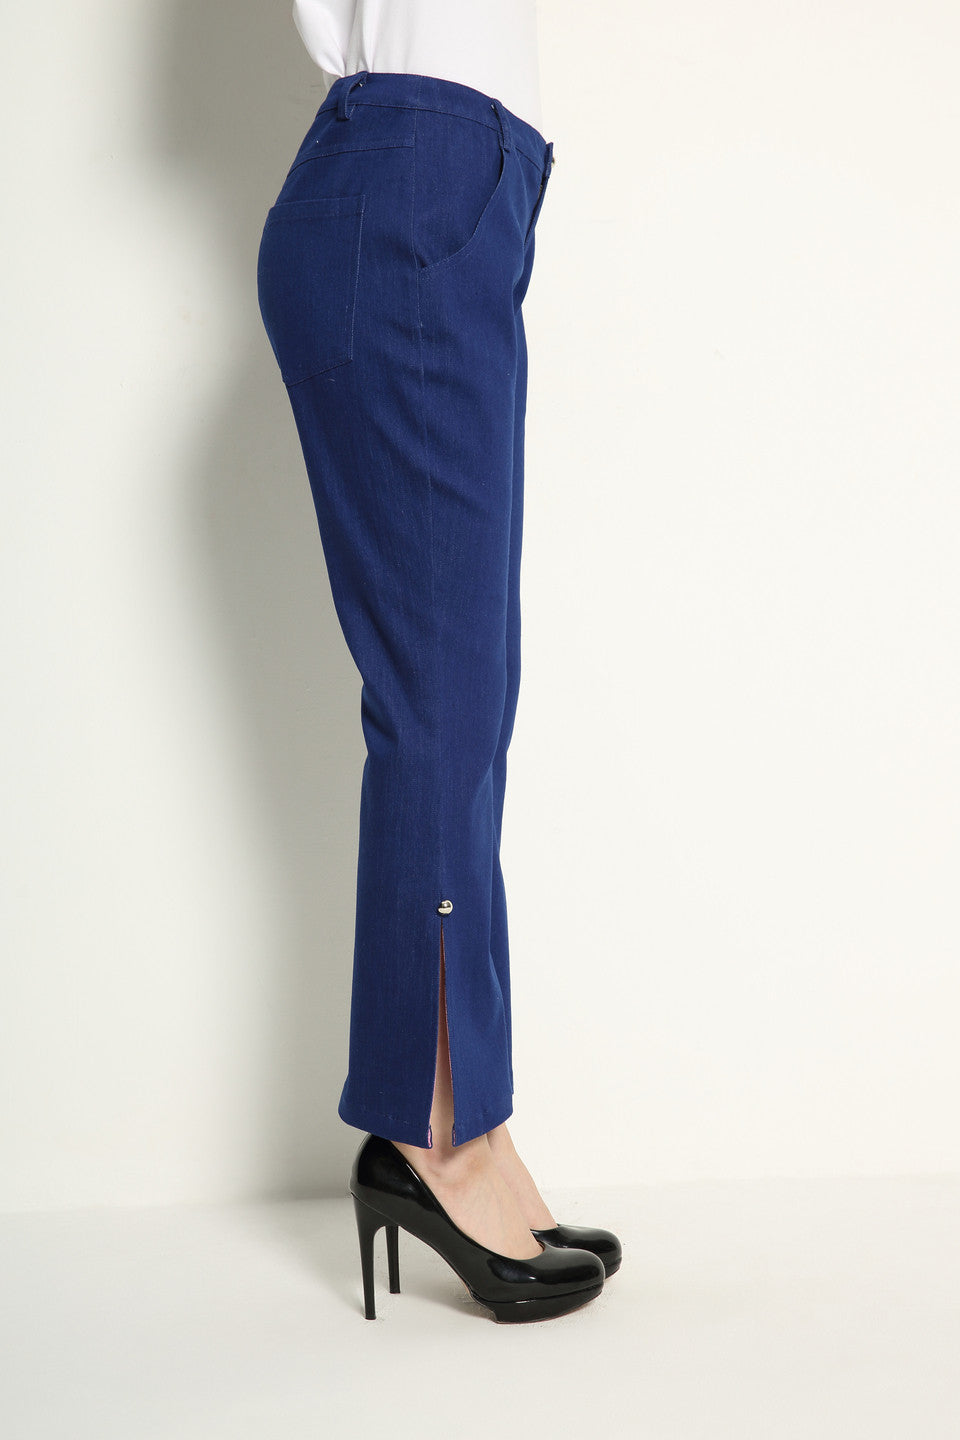 Slit Flare Jeans With Color Lining - GlanceZ   - 5